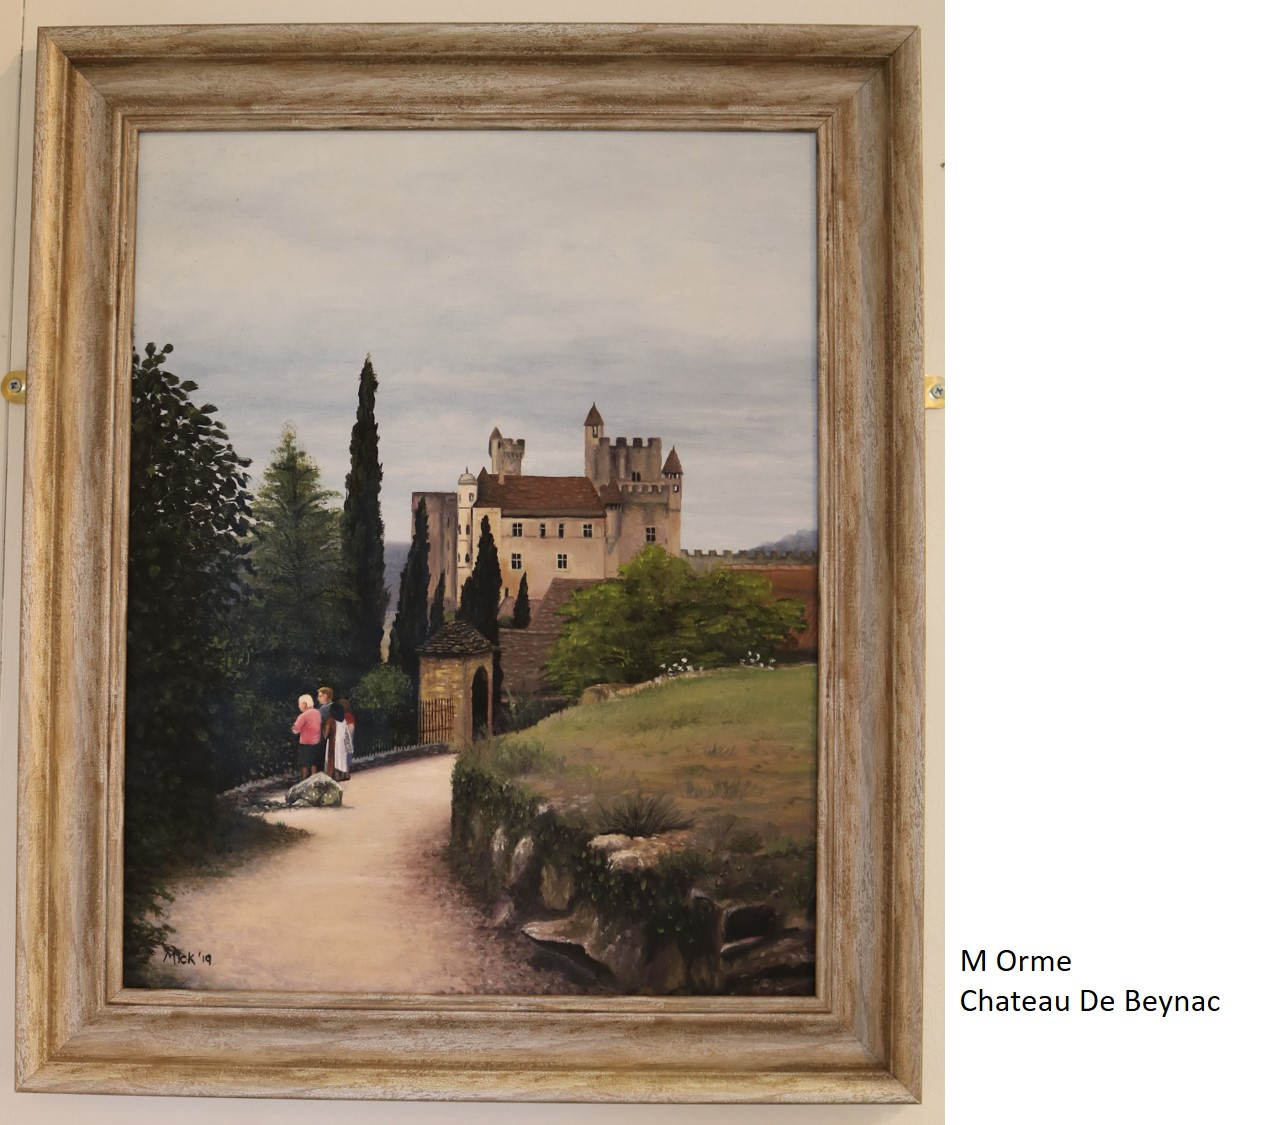 Orme_M_ChateauDeBeynac